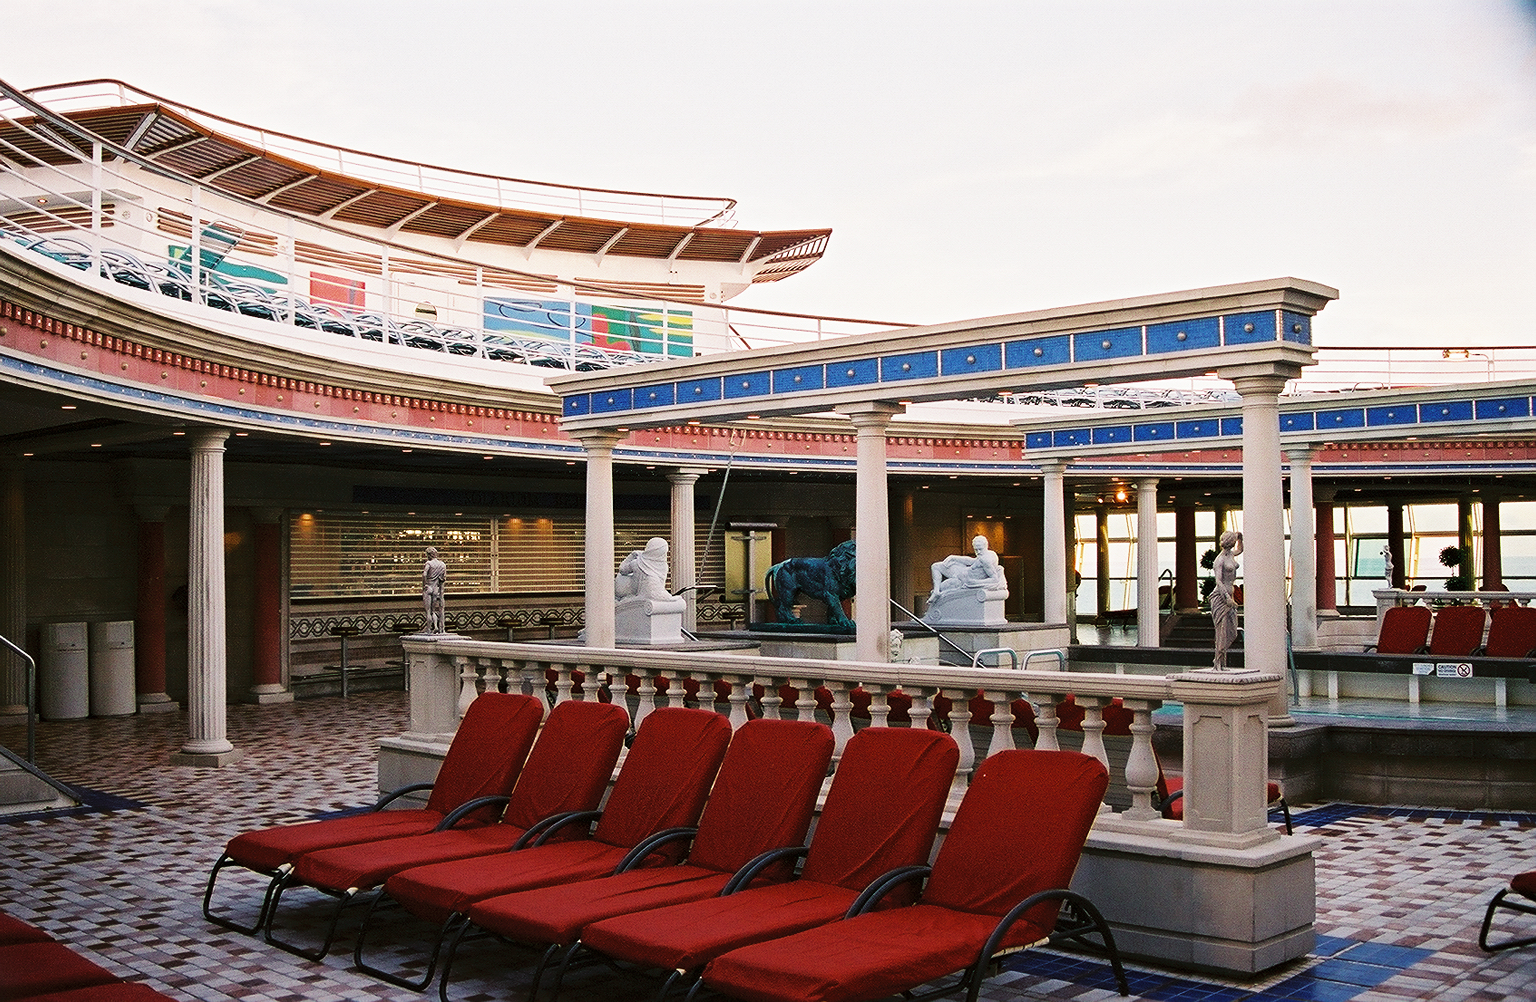 The Solarium Pool (our favorite spot on the ship)